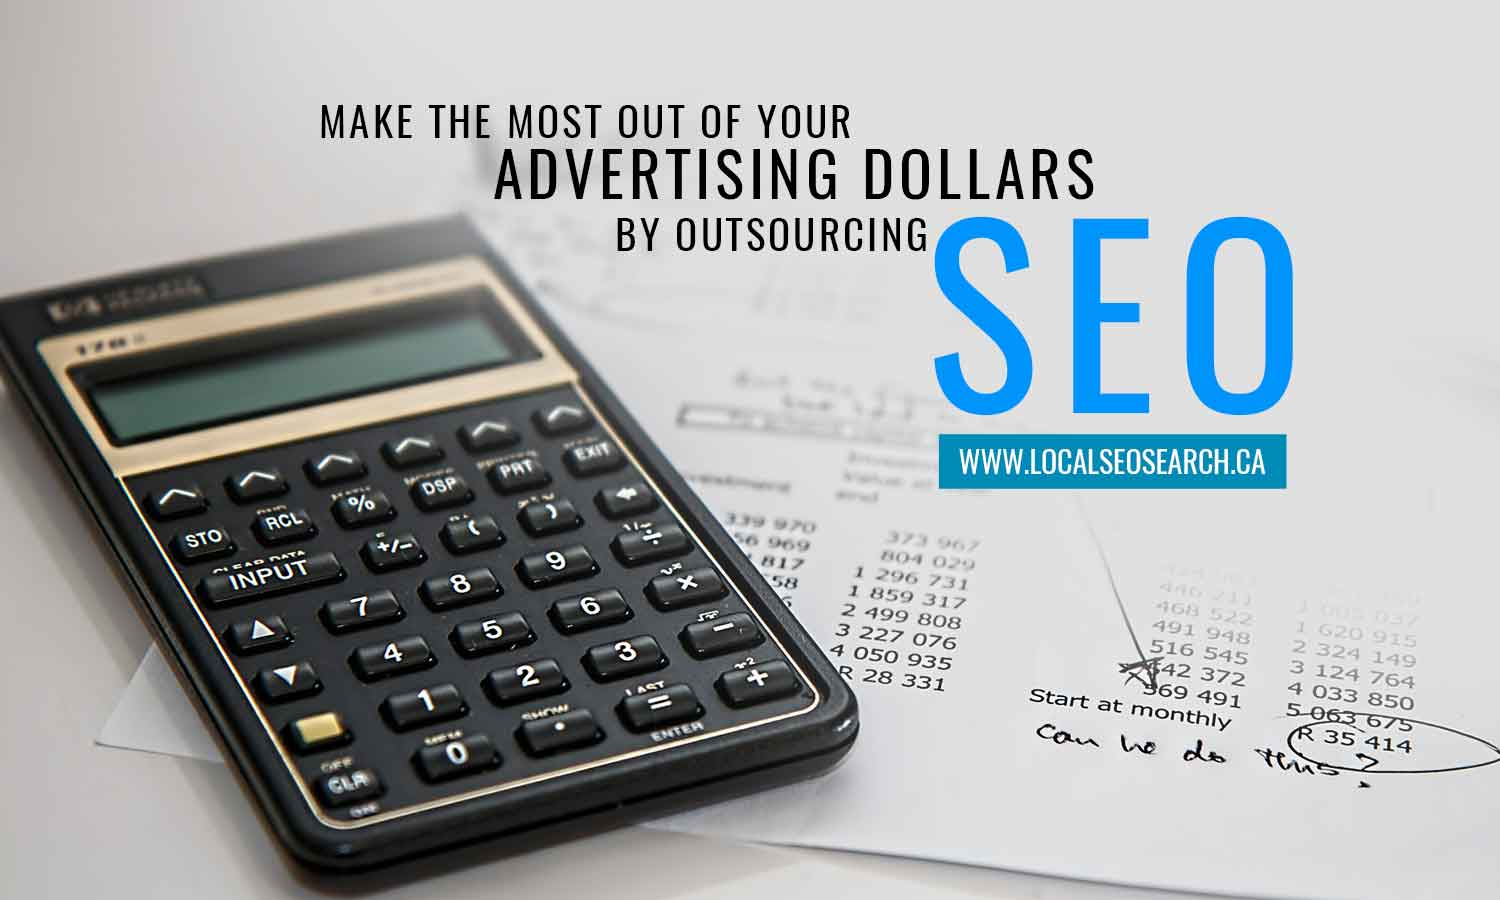 Make-the-most-out-of-your-advertising-dollars-by-outsourcing-SEO